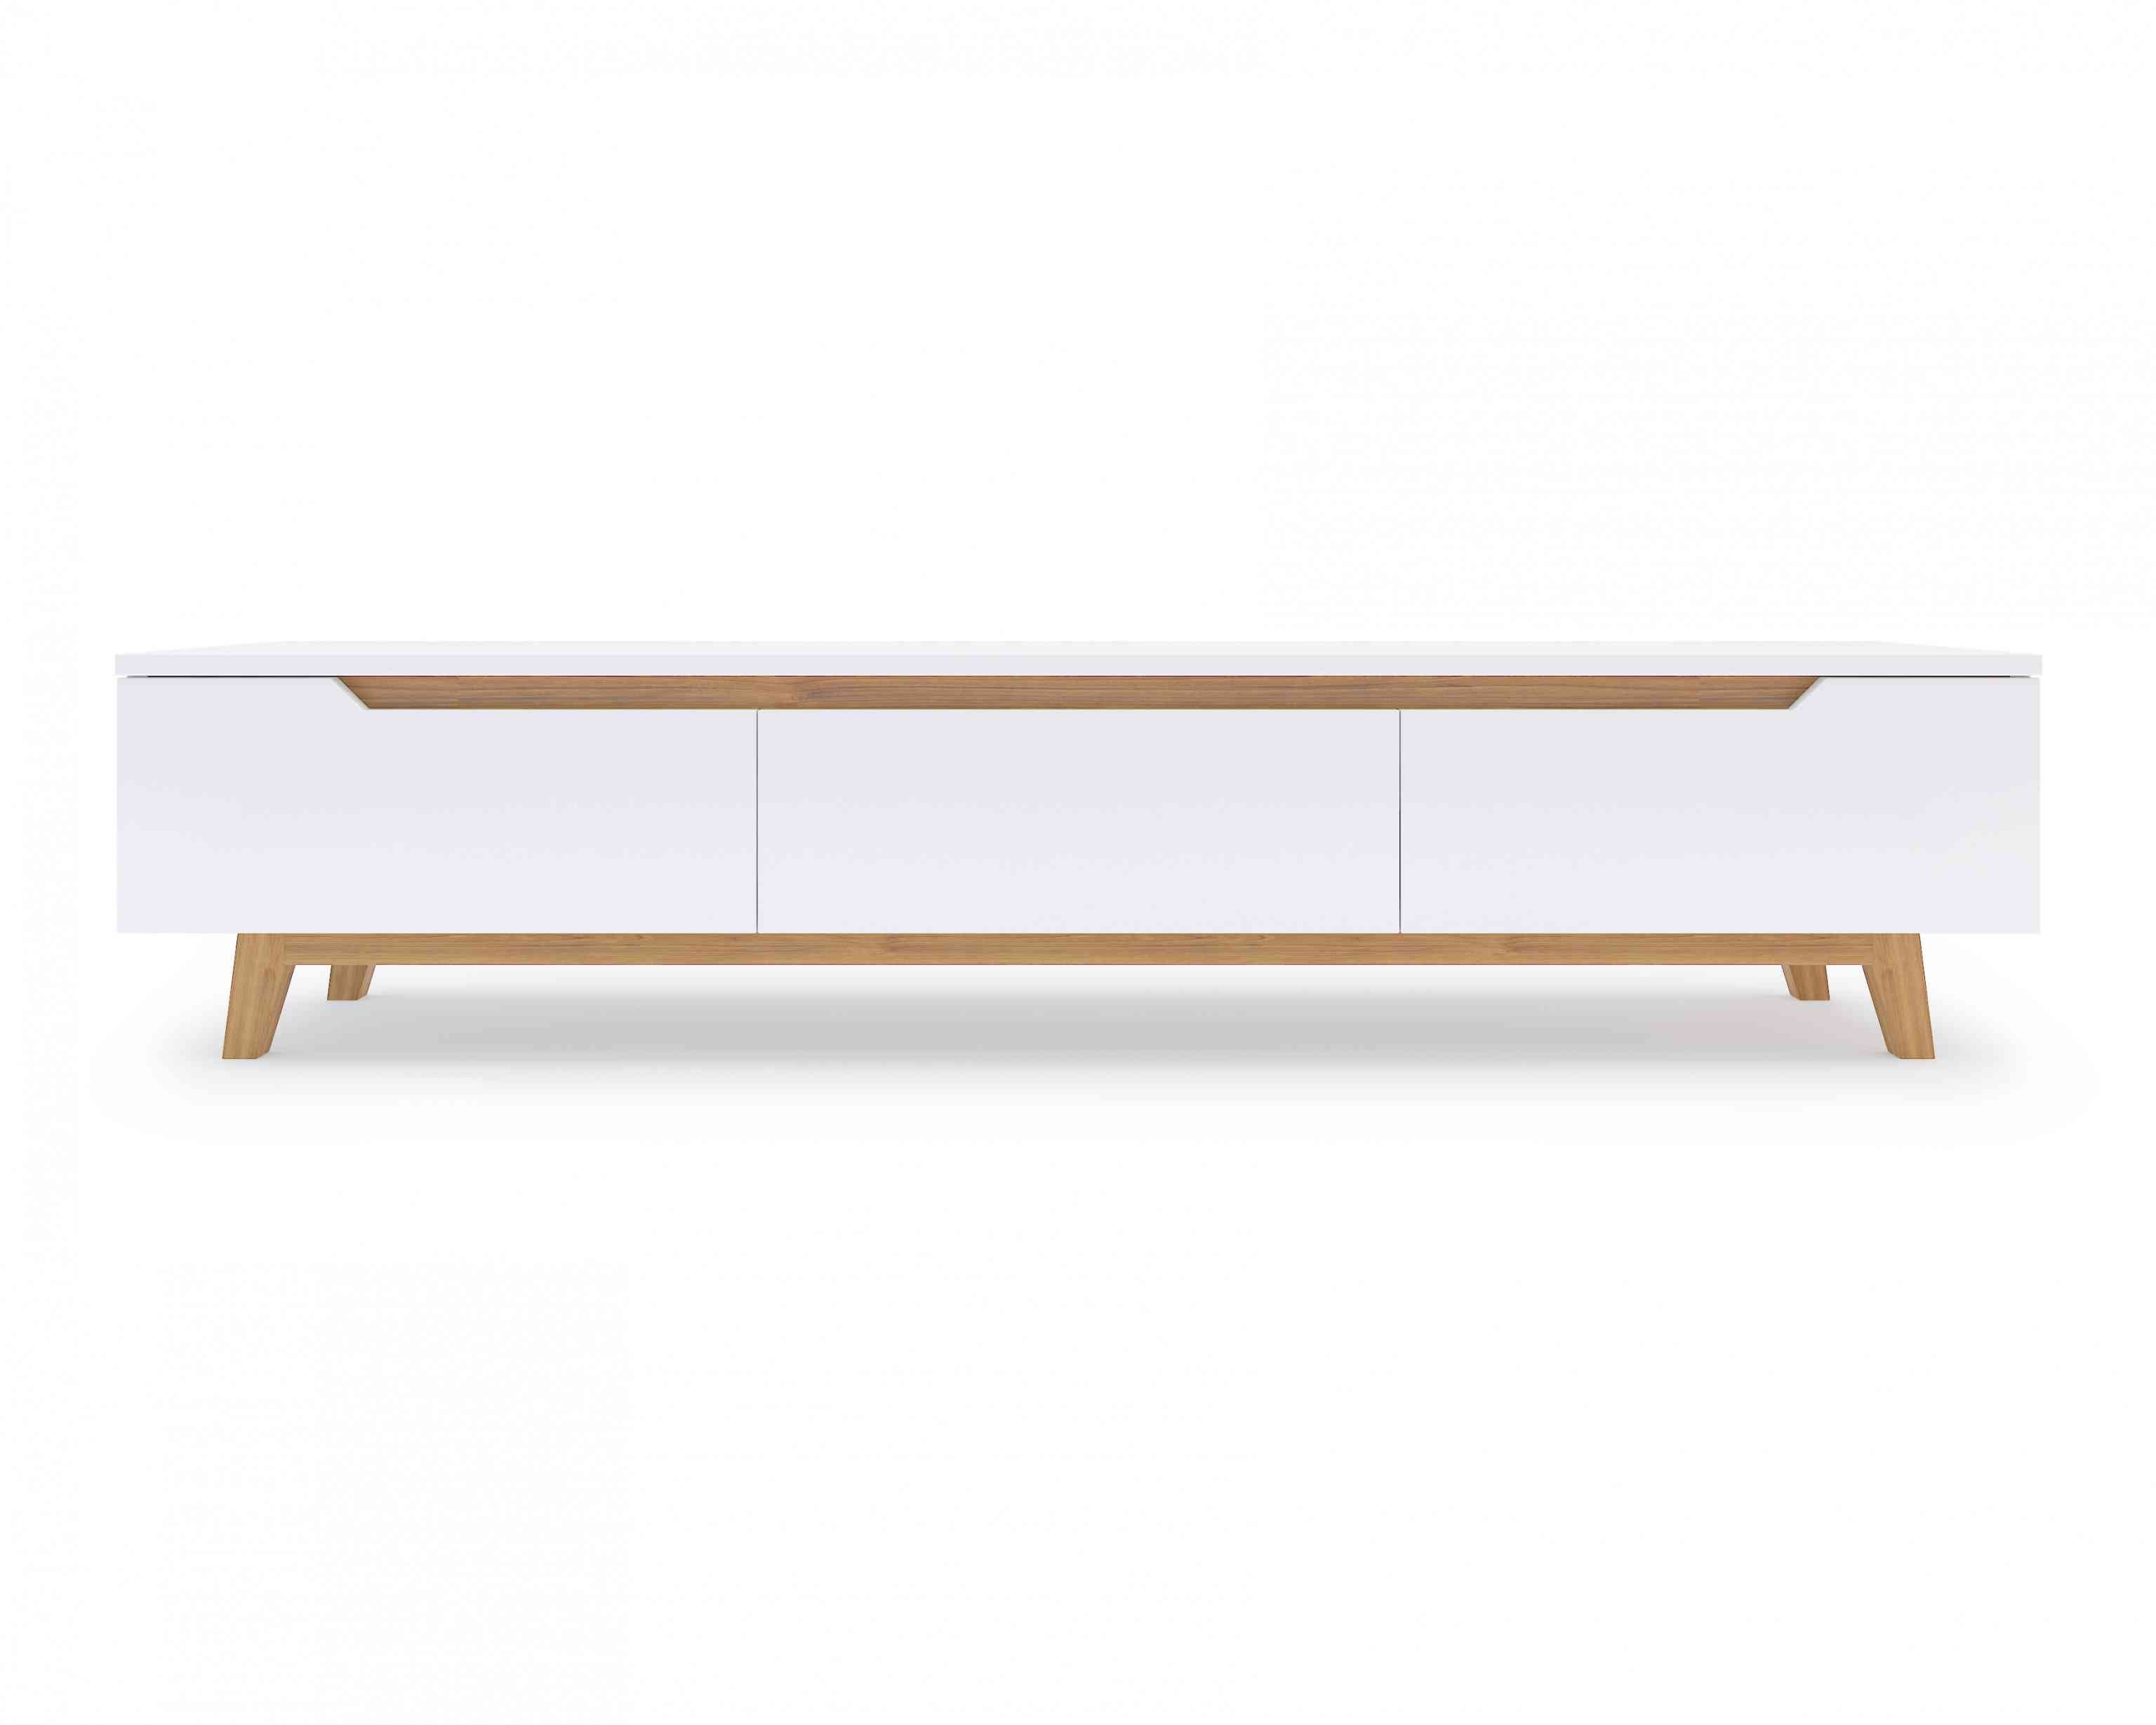 Mikkel Tv Stand Rove Concepts Rove Concepts Mid Century Furniture Tv Furniture Swivel Tv Stand Furniture